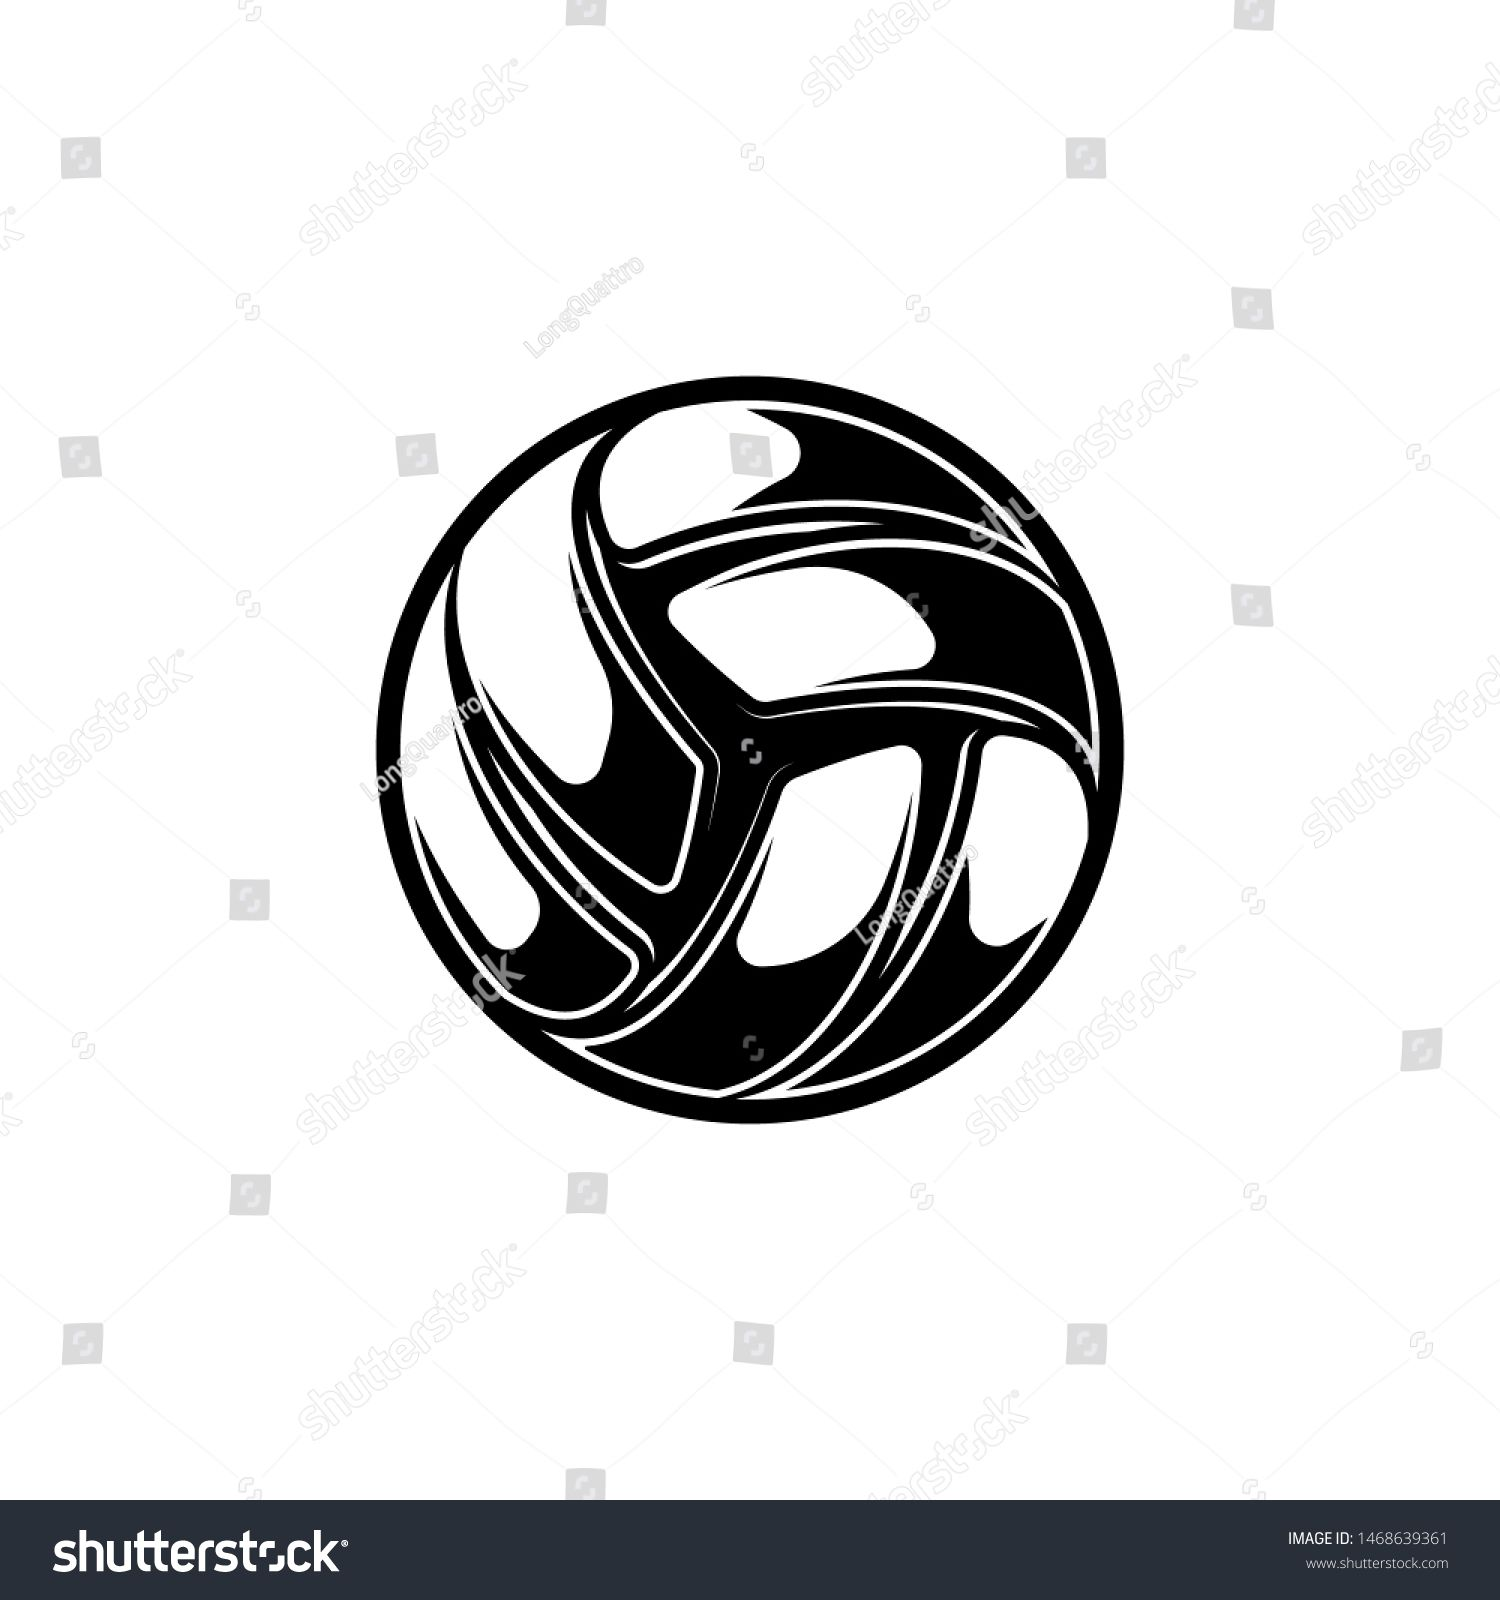 Volleyball Silhouette With Shadow Lines Isolated On White Background Ad Aff Shadow Silhouette Volleyball Volleyball Silhouette Graphic Design Ppt Design